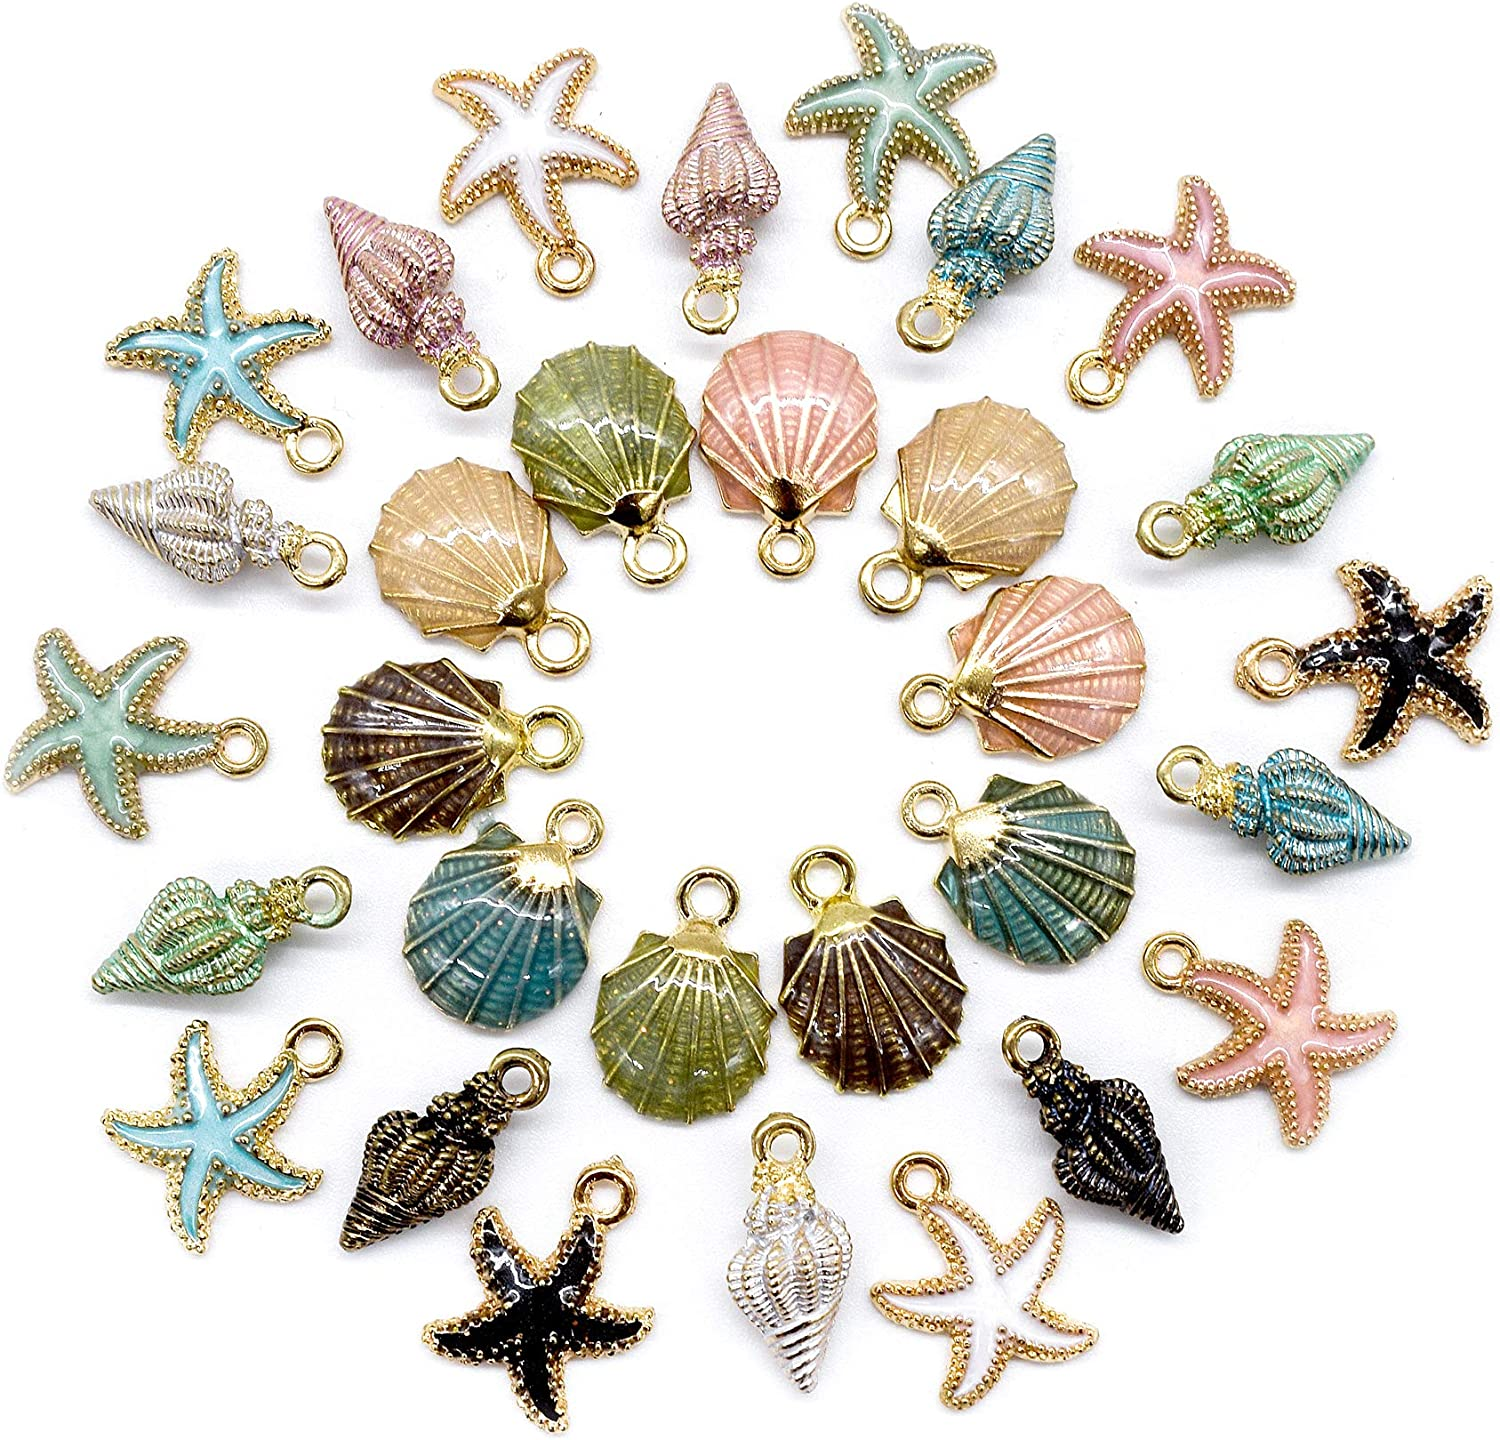 Ocean Sea Animal Starfish Charm for Necklace Bracelet DIY Jewelry Making 10PCS